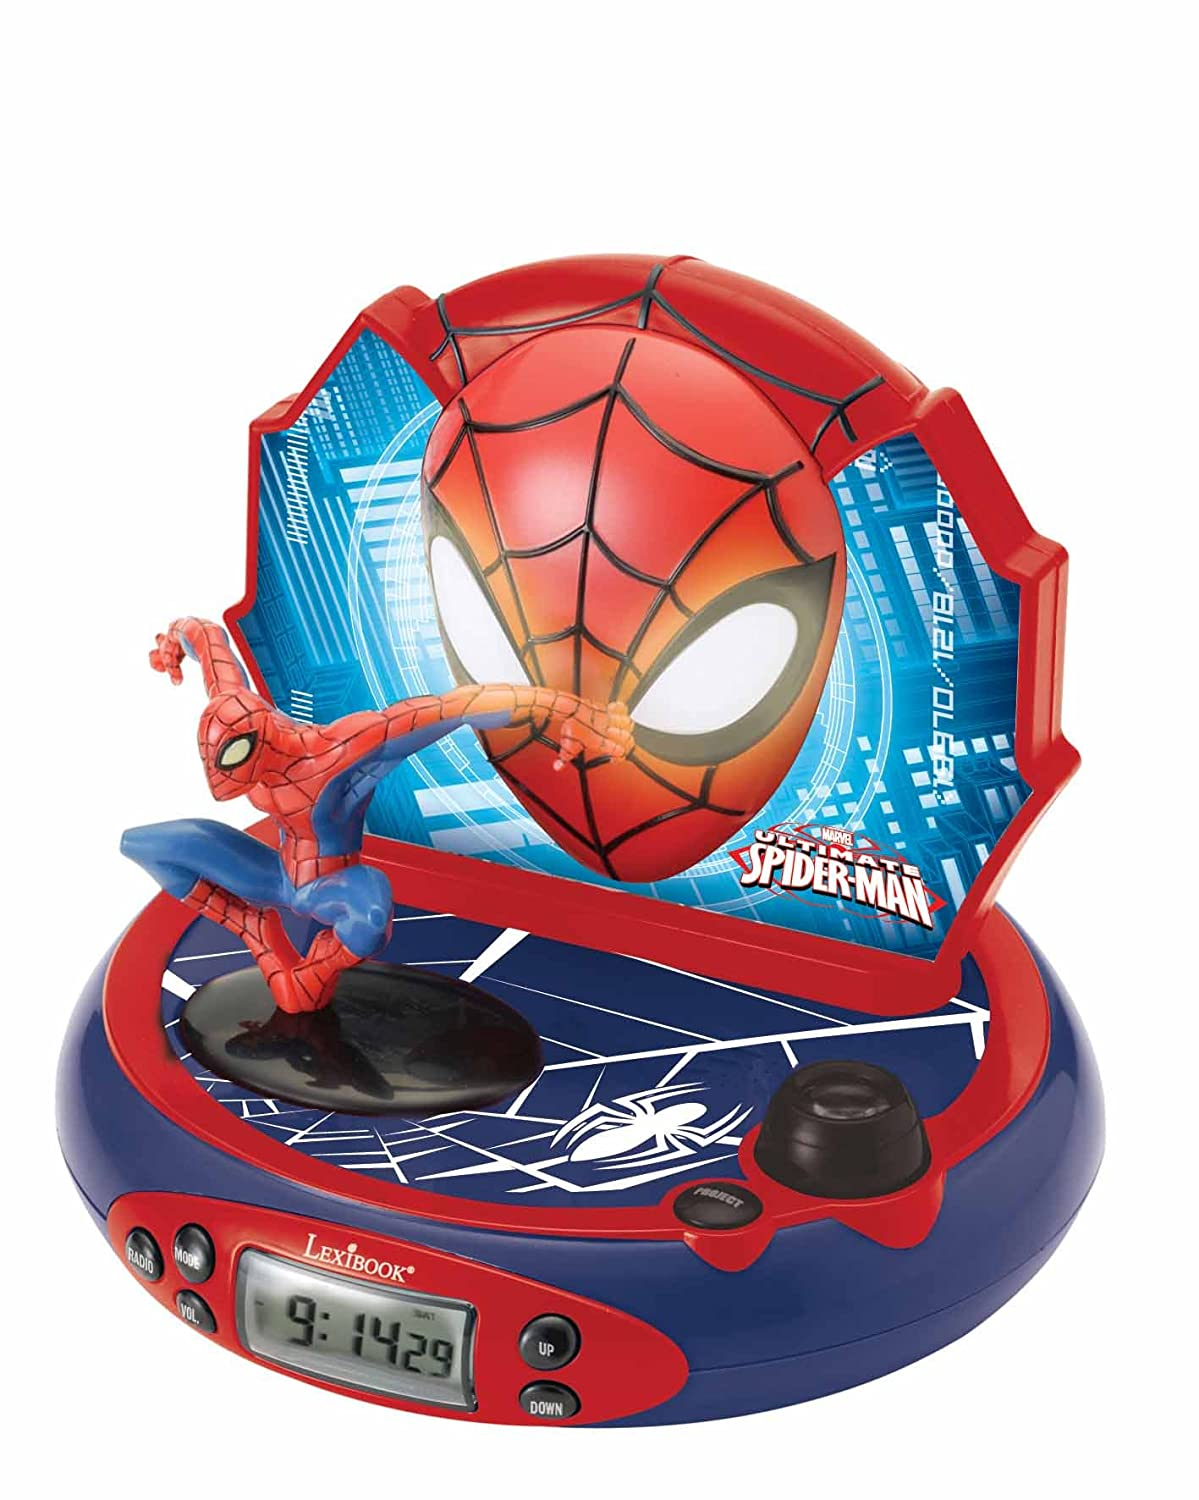 Lexibook Marvel Spider-Man Peter Parker, Projector Alarm Clock, Projecting  Spider-Man puictures on the ceiling, FM radio, LDC screen, Snooze function,